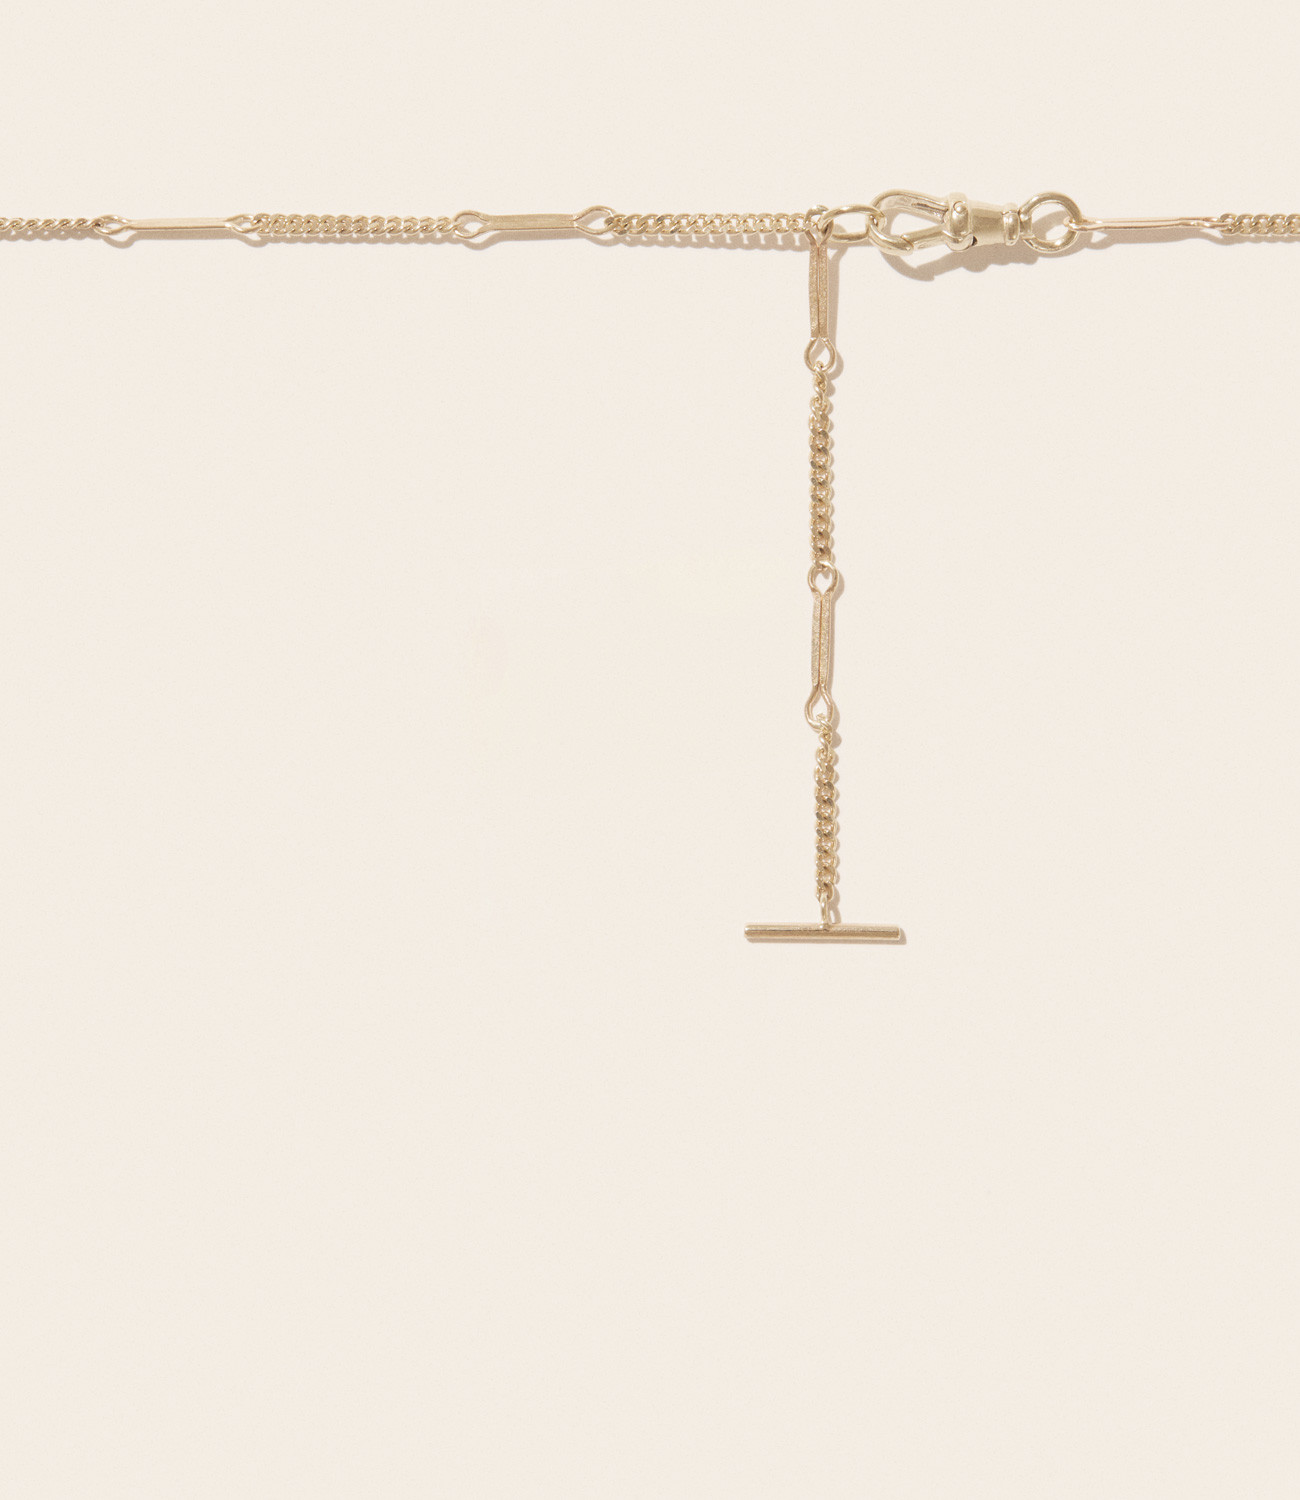 PETRA N°4 Collier Pascale Monvoisin Jewelry